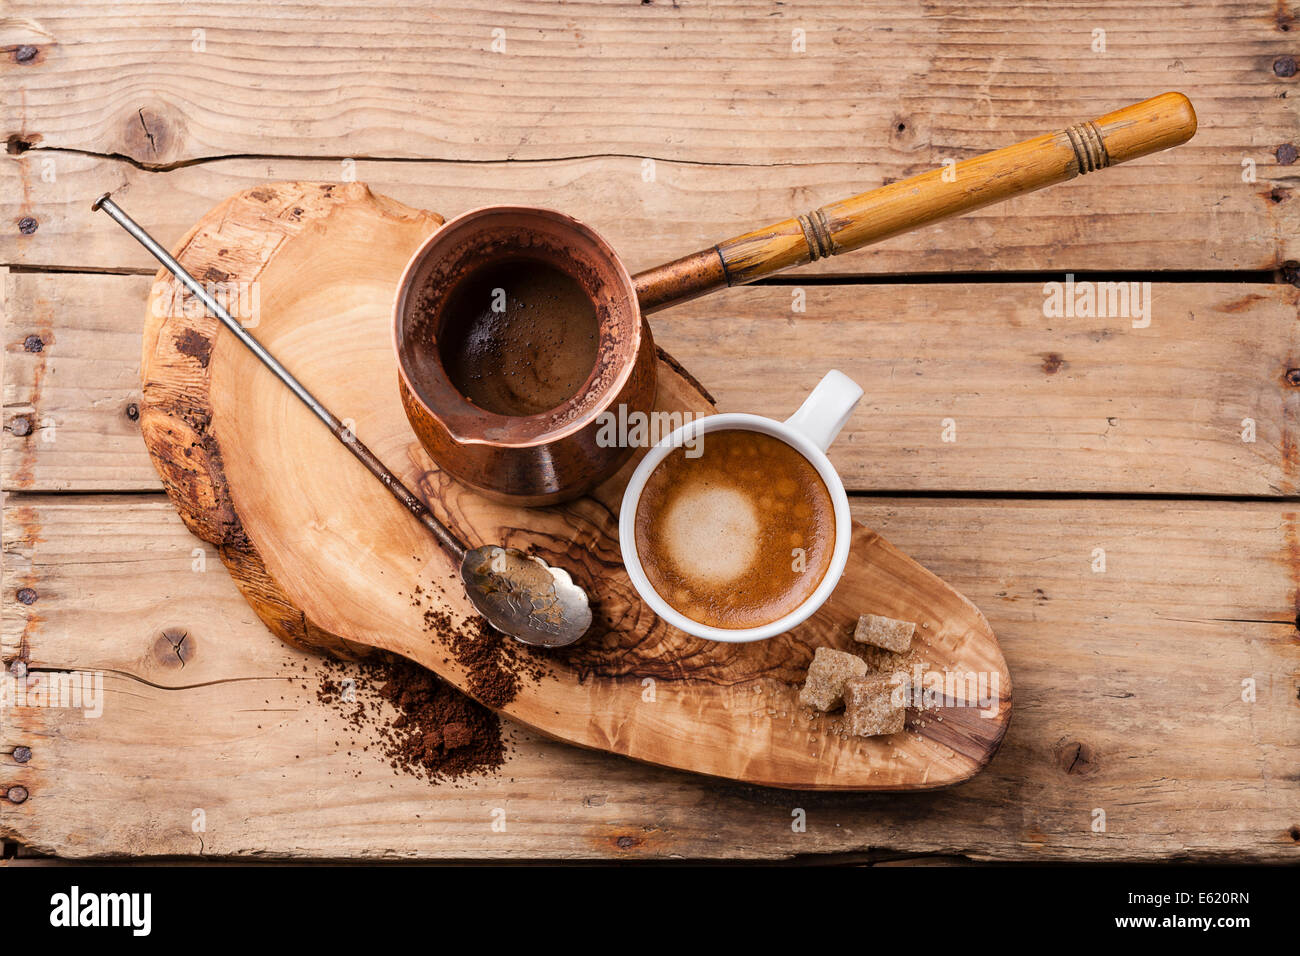 Coffee in coffee pot on wooden background - Stock Image